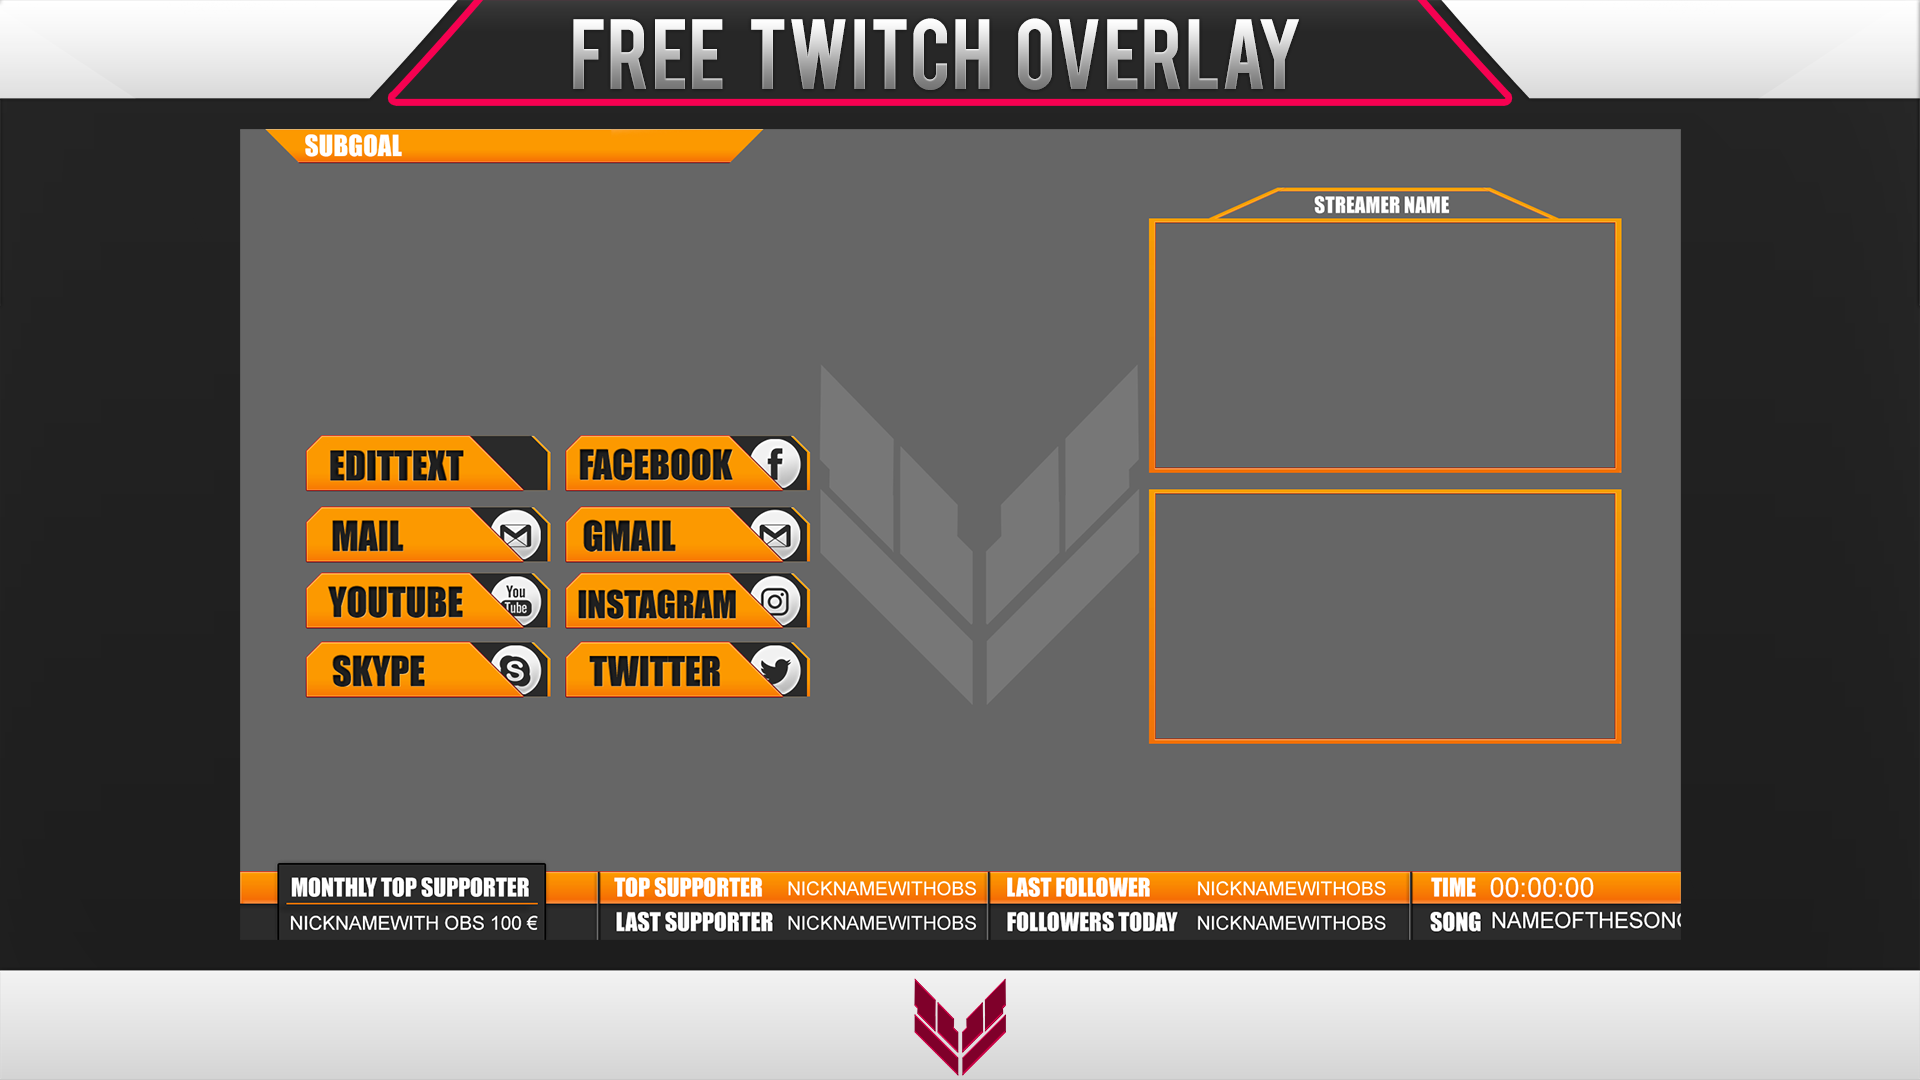 twitch layout template - template free twitch overlay 4 by ayzs on deviantart